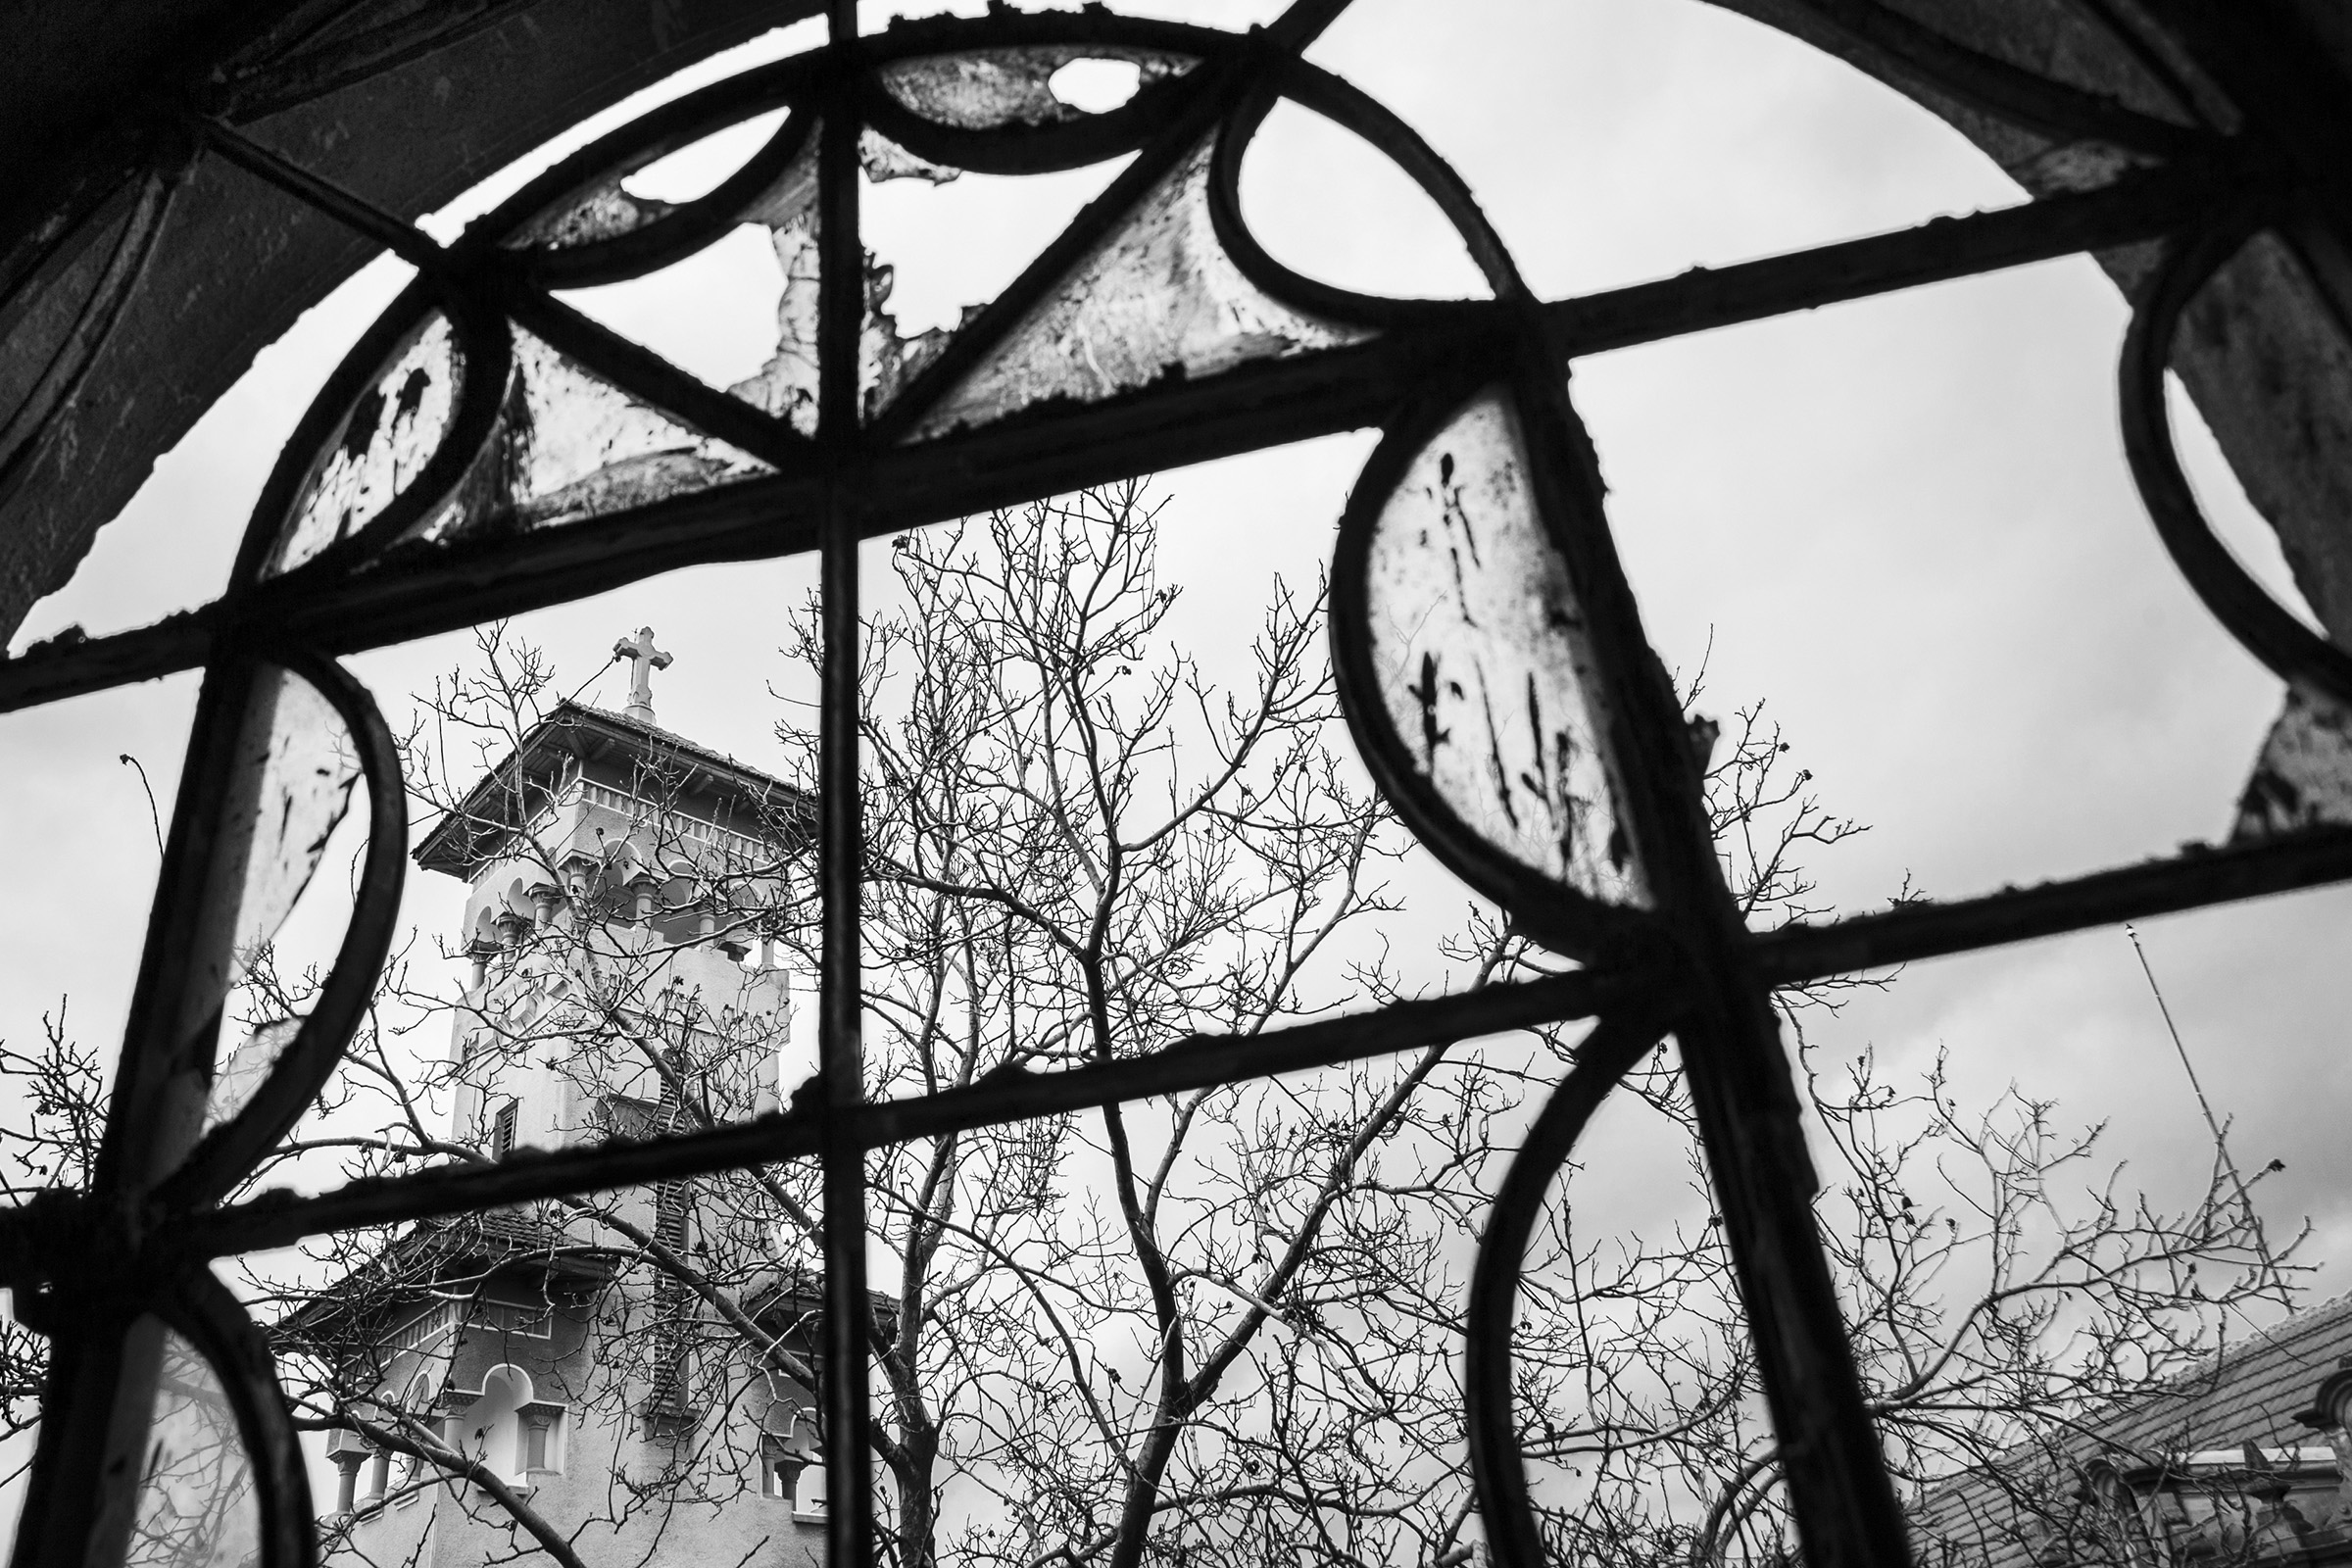 The Biserica Buna Vestire, or the Church of the Annunciation, stands ust outside the shattered windows of the old Teleki Synagogue in Oradea, Romania on April 10, 2013. The two religious communities in Oradea once worshipped side-by-side leading up to the war, but as fascism rose to power, fierce anti-Semitism and nationalism followed closely behind. (Photo by Daniel Owen/GroundTruth)